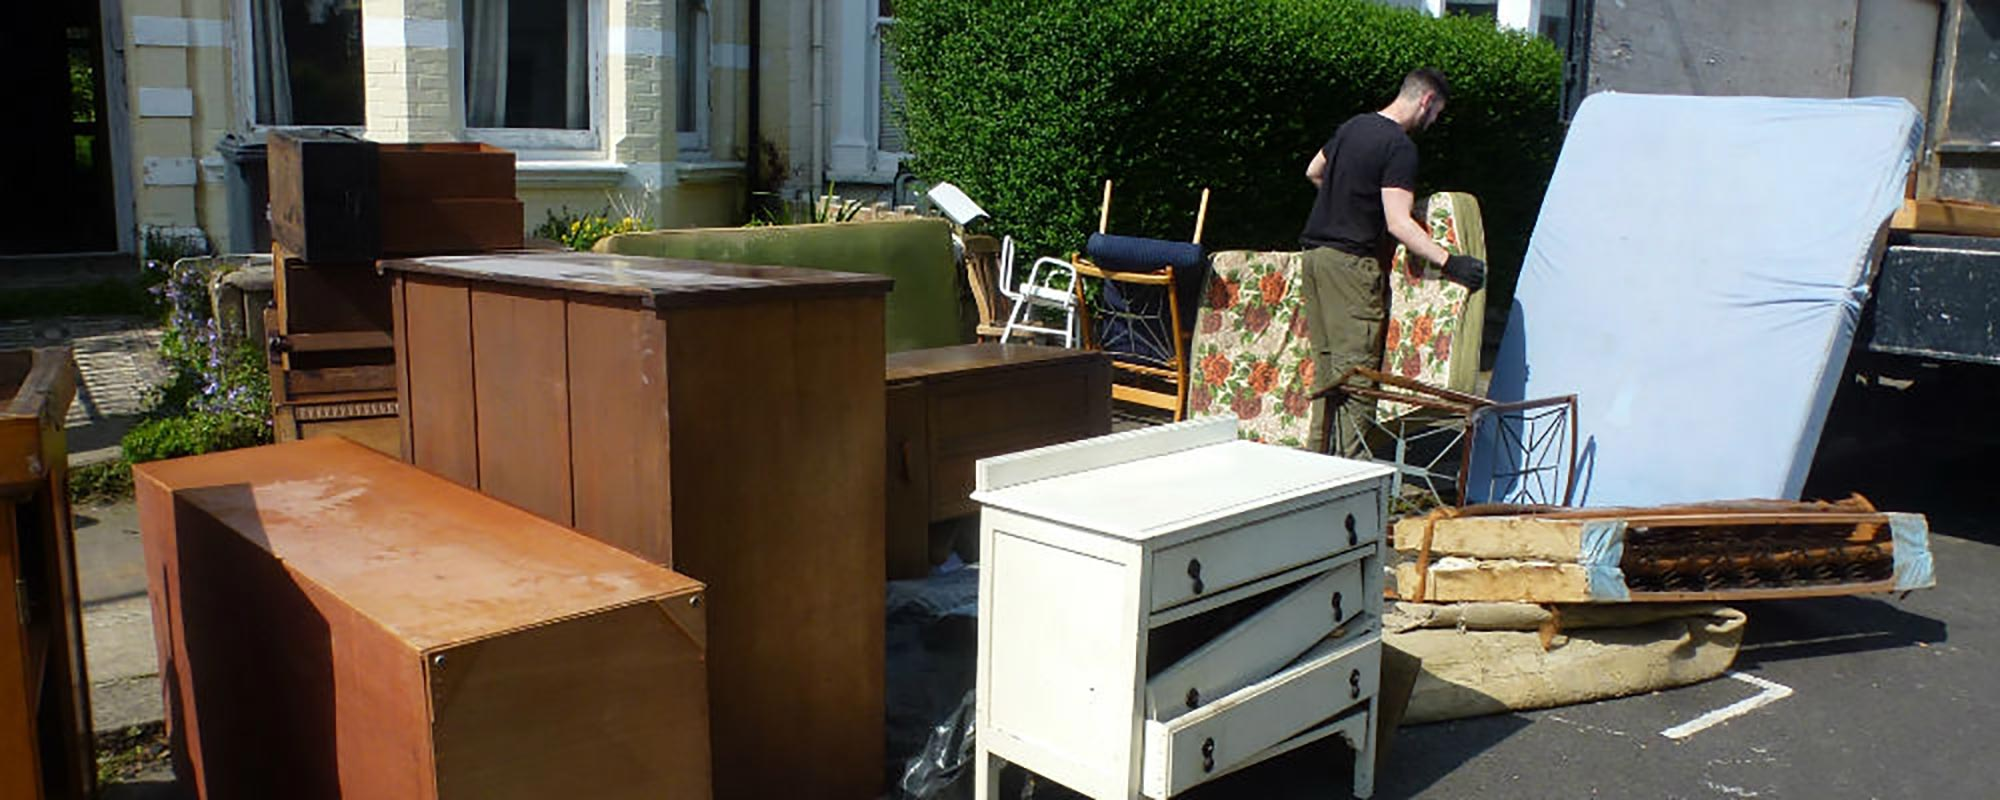 Furniture disposal london london furniture disposal for Furniture removal